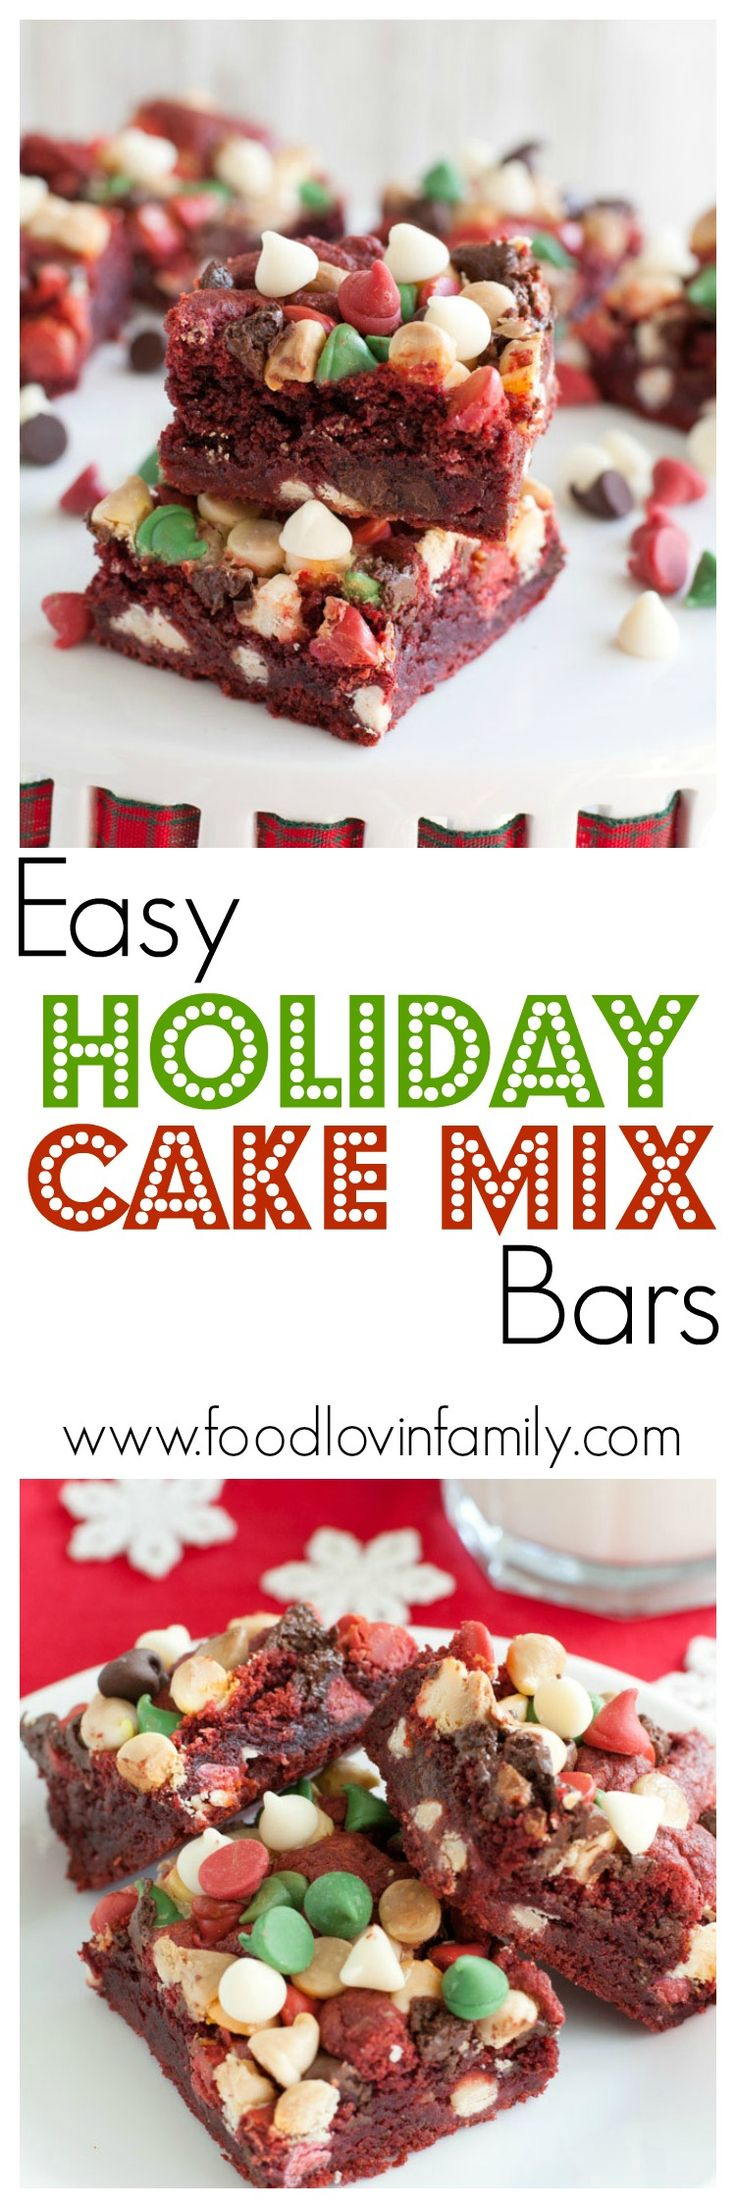 Easy holiday cake mix bars are filled with chocolate chips and red velvet cake. These bars are ooey gooey amazing! Bring them to your next holiday party.    http://www.foodlovinfamily.com/easy-holiday-cake-mix-bars/